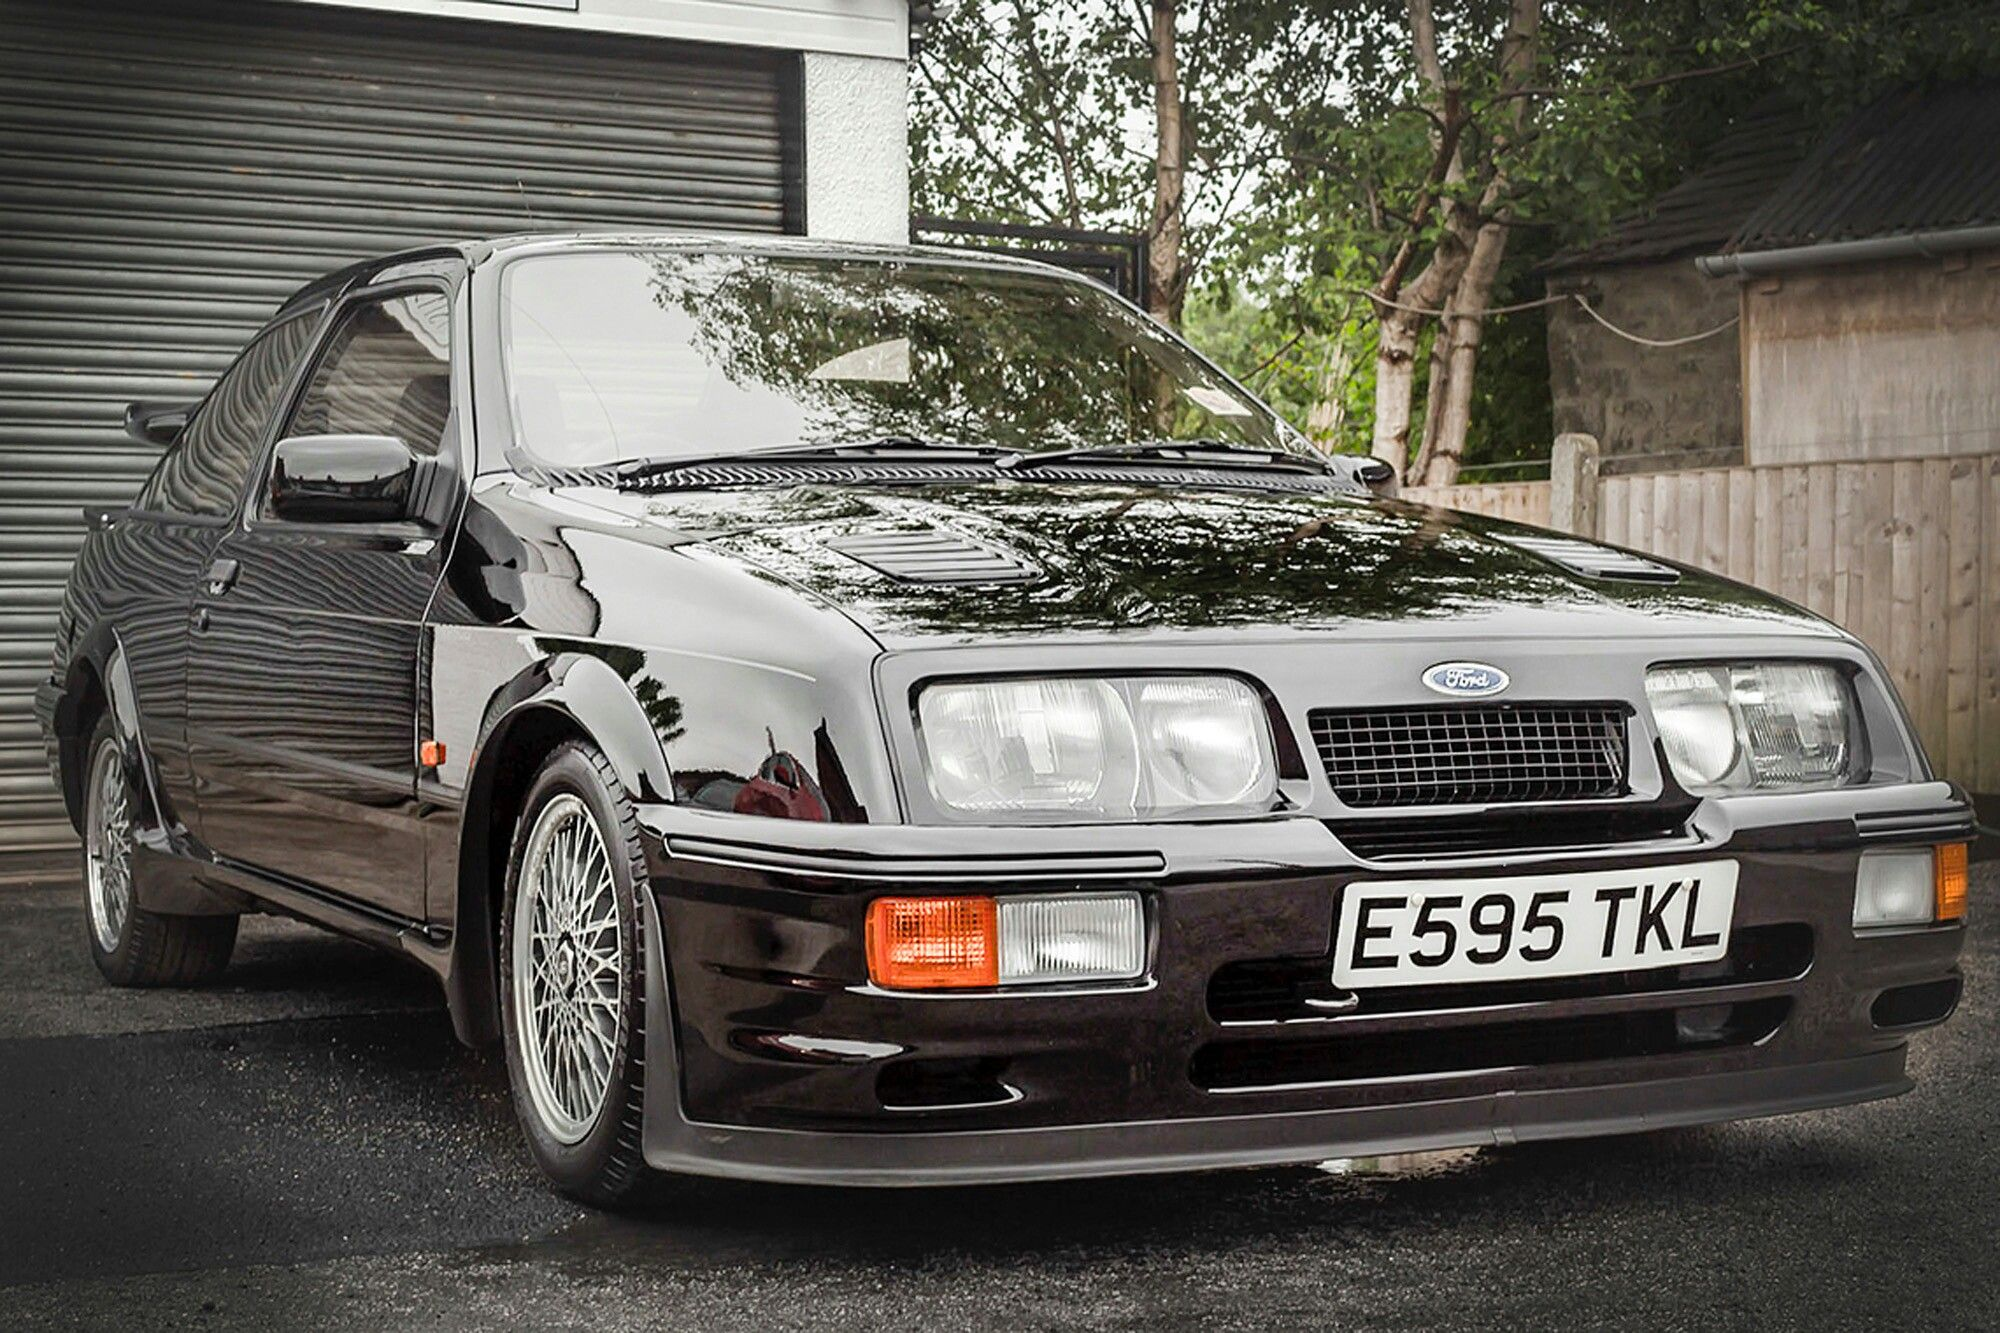 Pin By Simonpotts On Ford Sierra Rs Cosworth Pictures Ford Sierra Ford Classic Cars Cars Uk